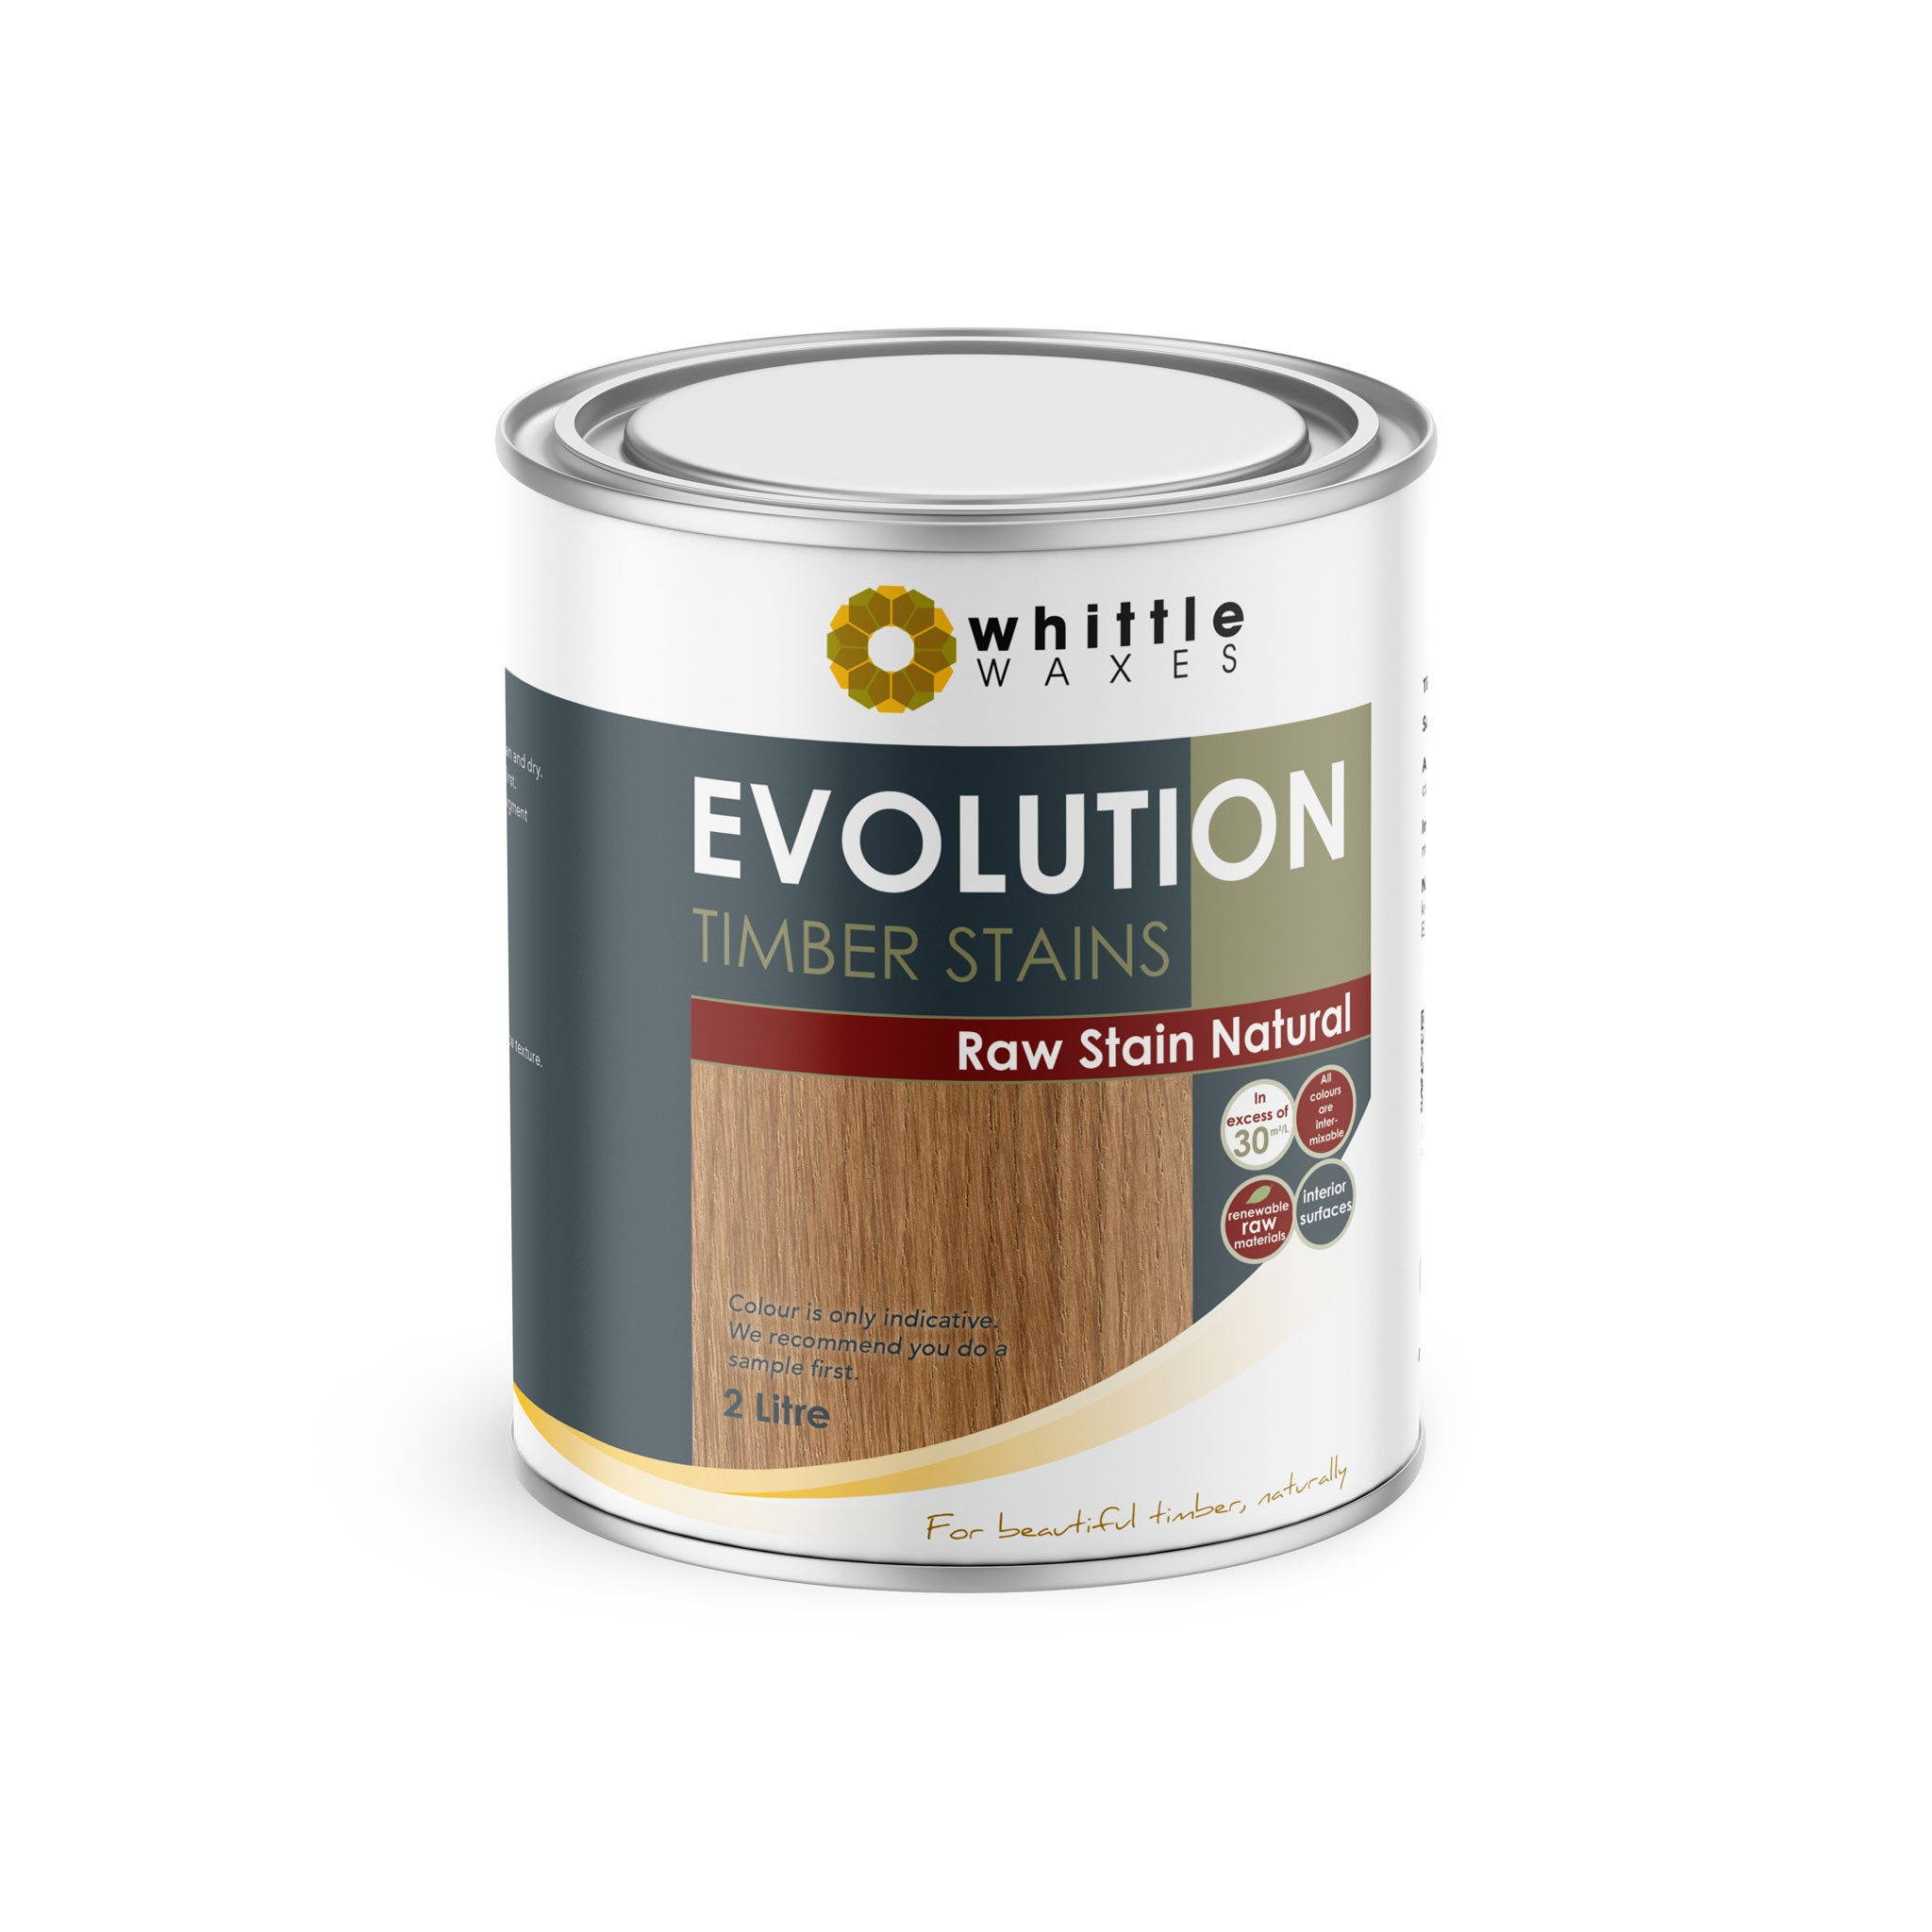 Whittle Waxes Evolution Raw Stain Natural - quality timber stain - 2 Litre